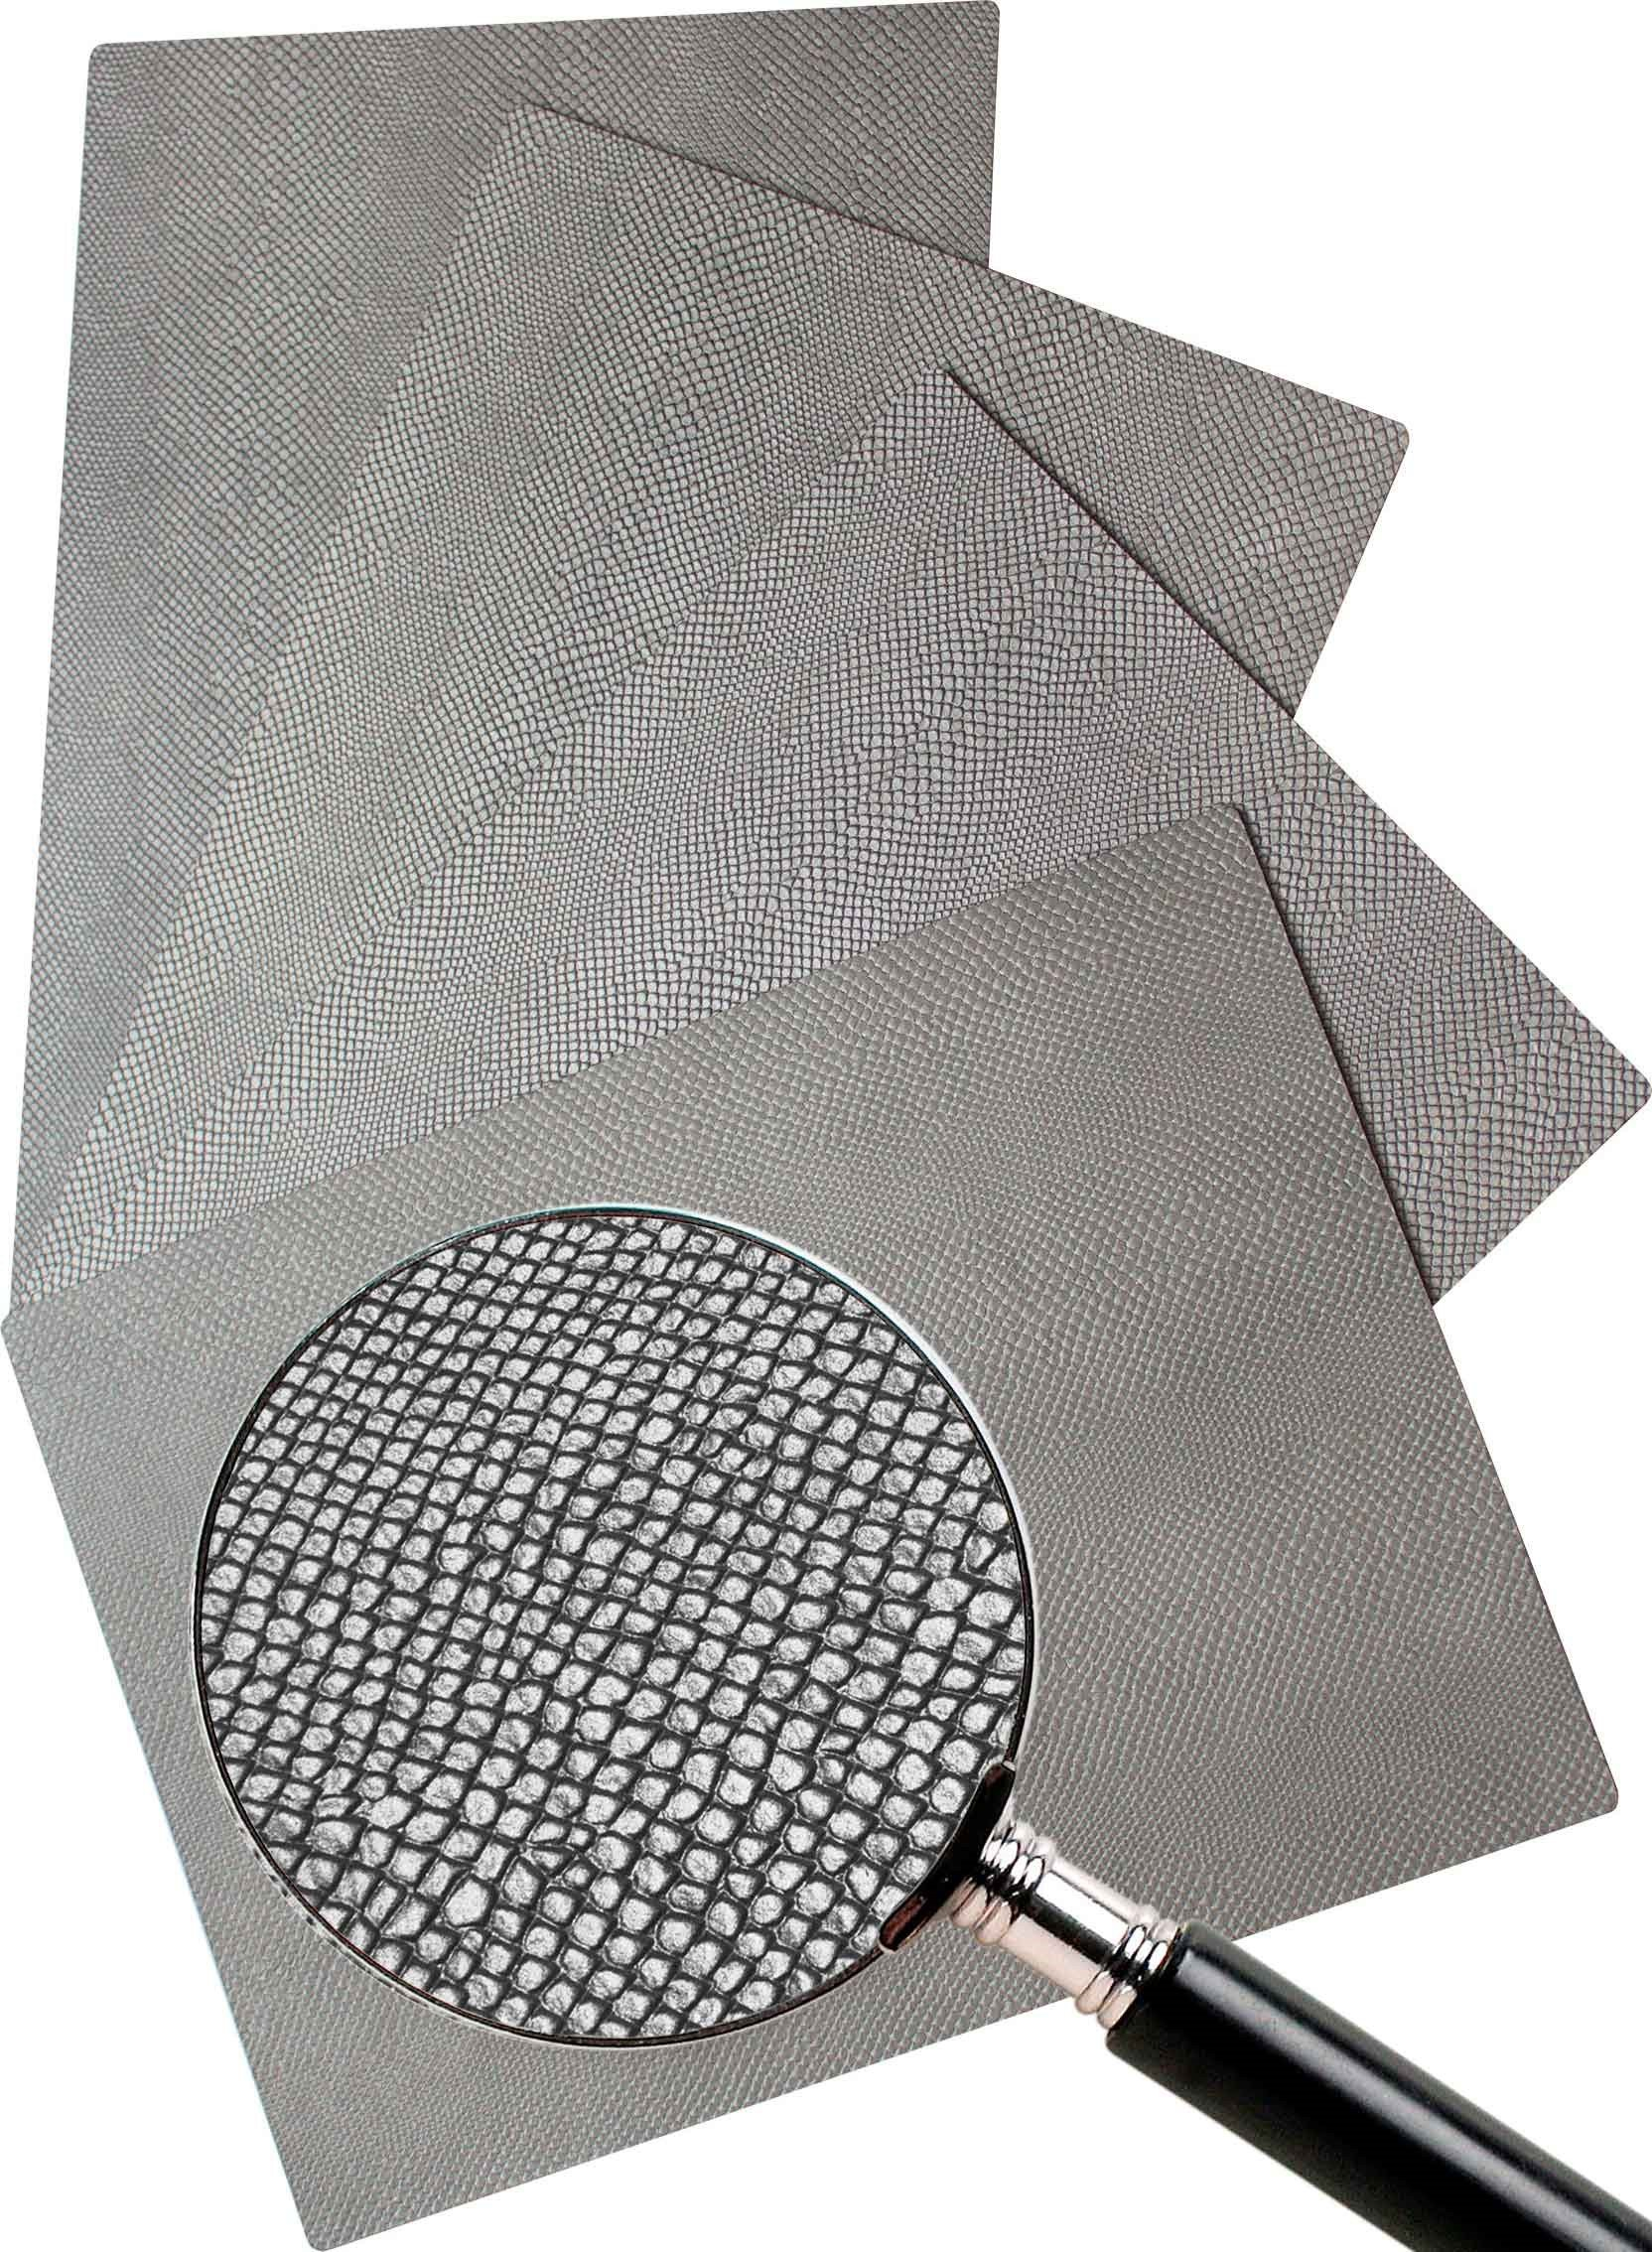 Leather Placemats, Real cowhide, hand finished, 13'' x 18'' (4 piece set) (Silver)